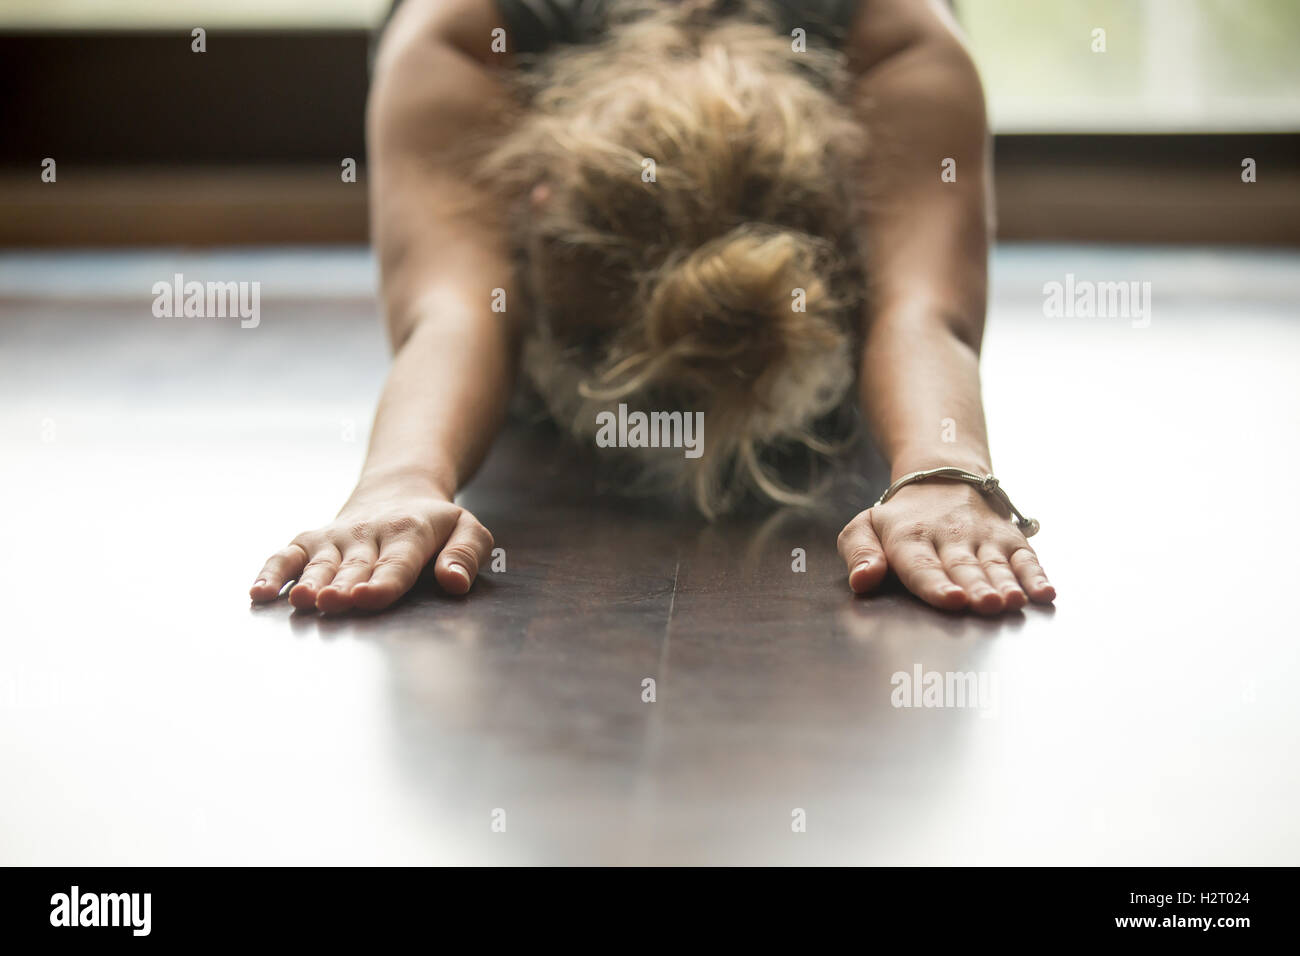 Yoga at home: Child Pose - Stock Image